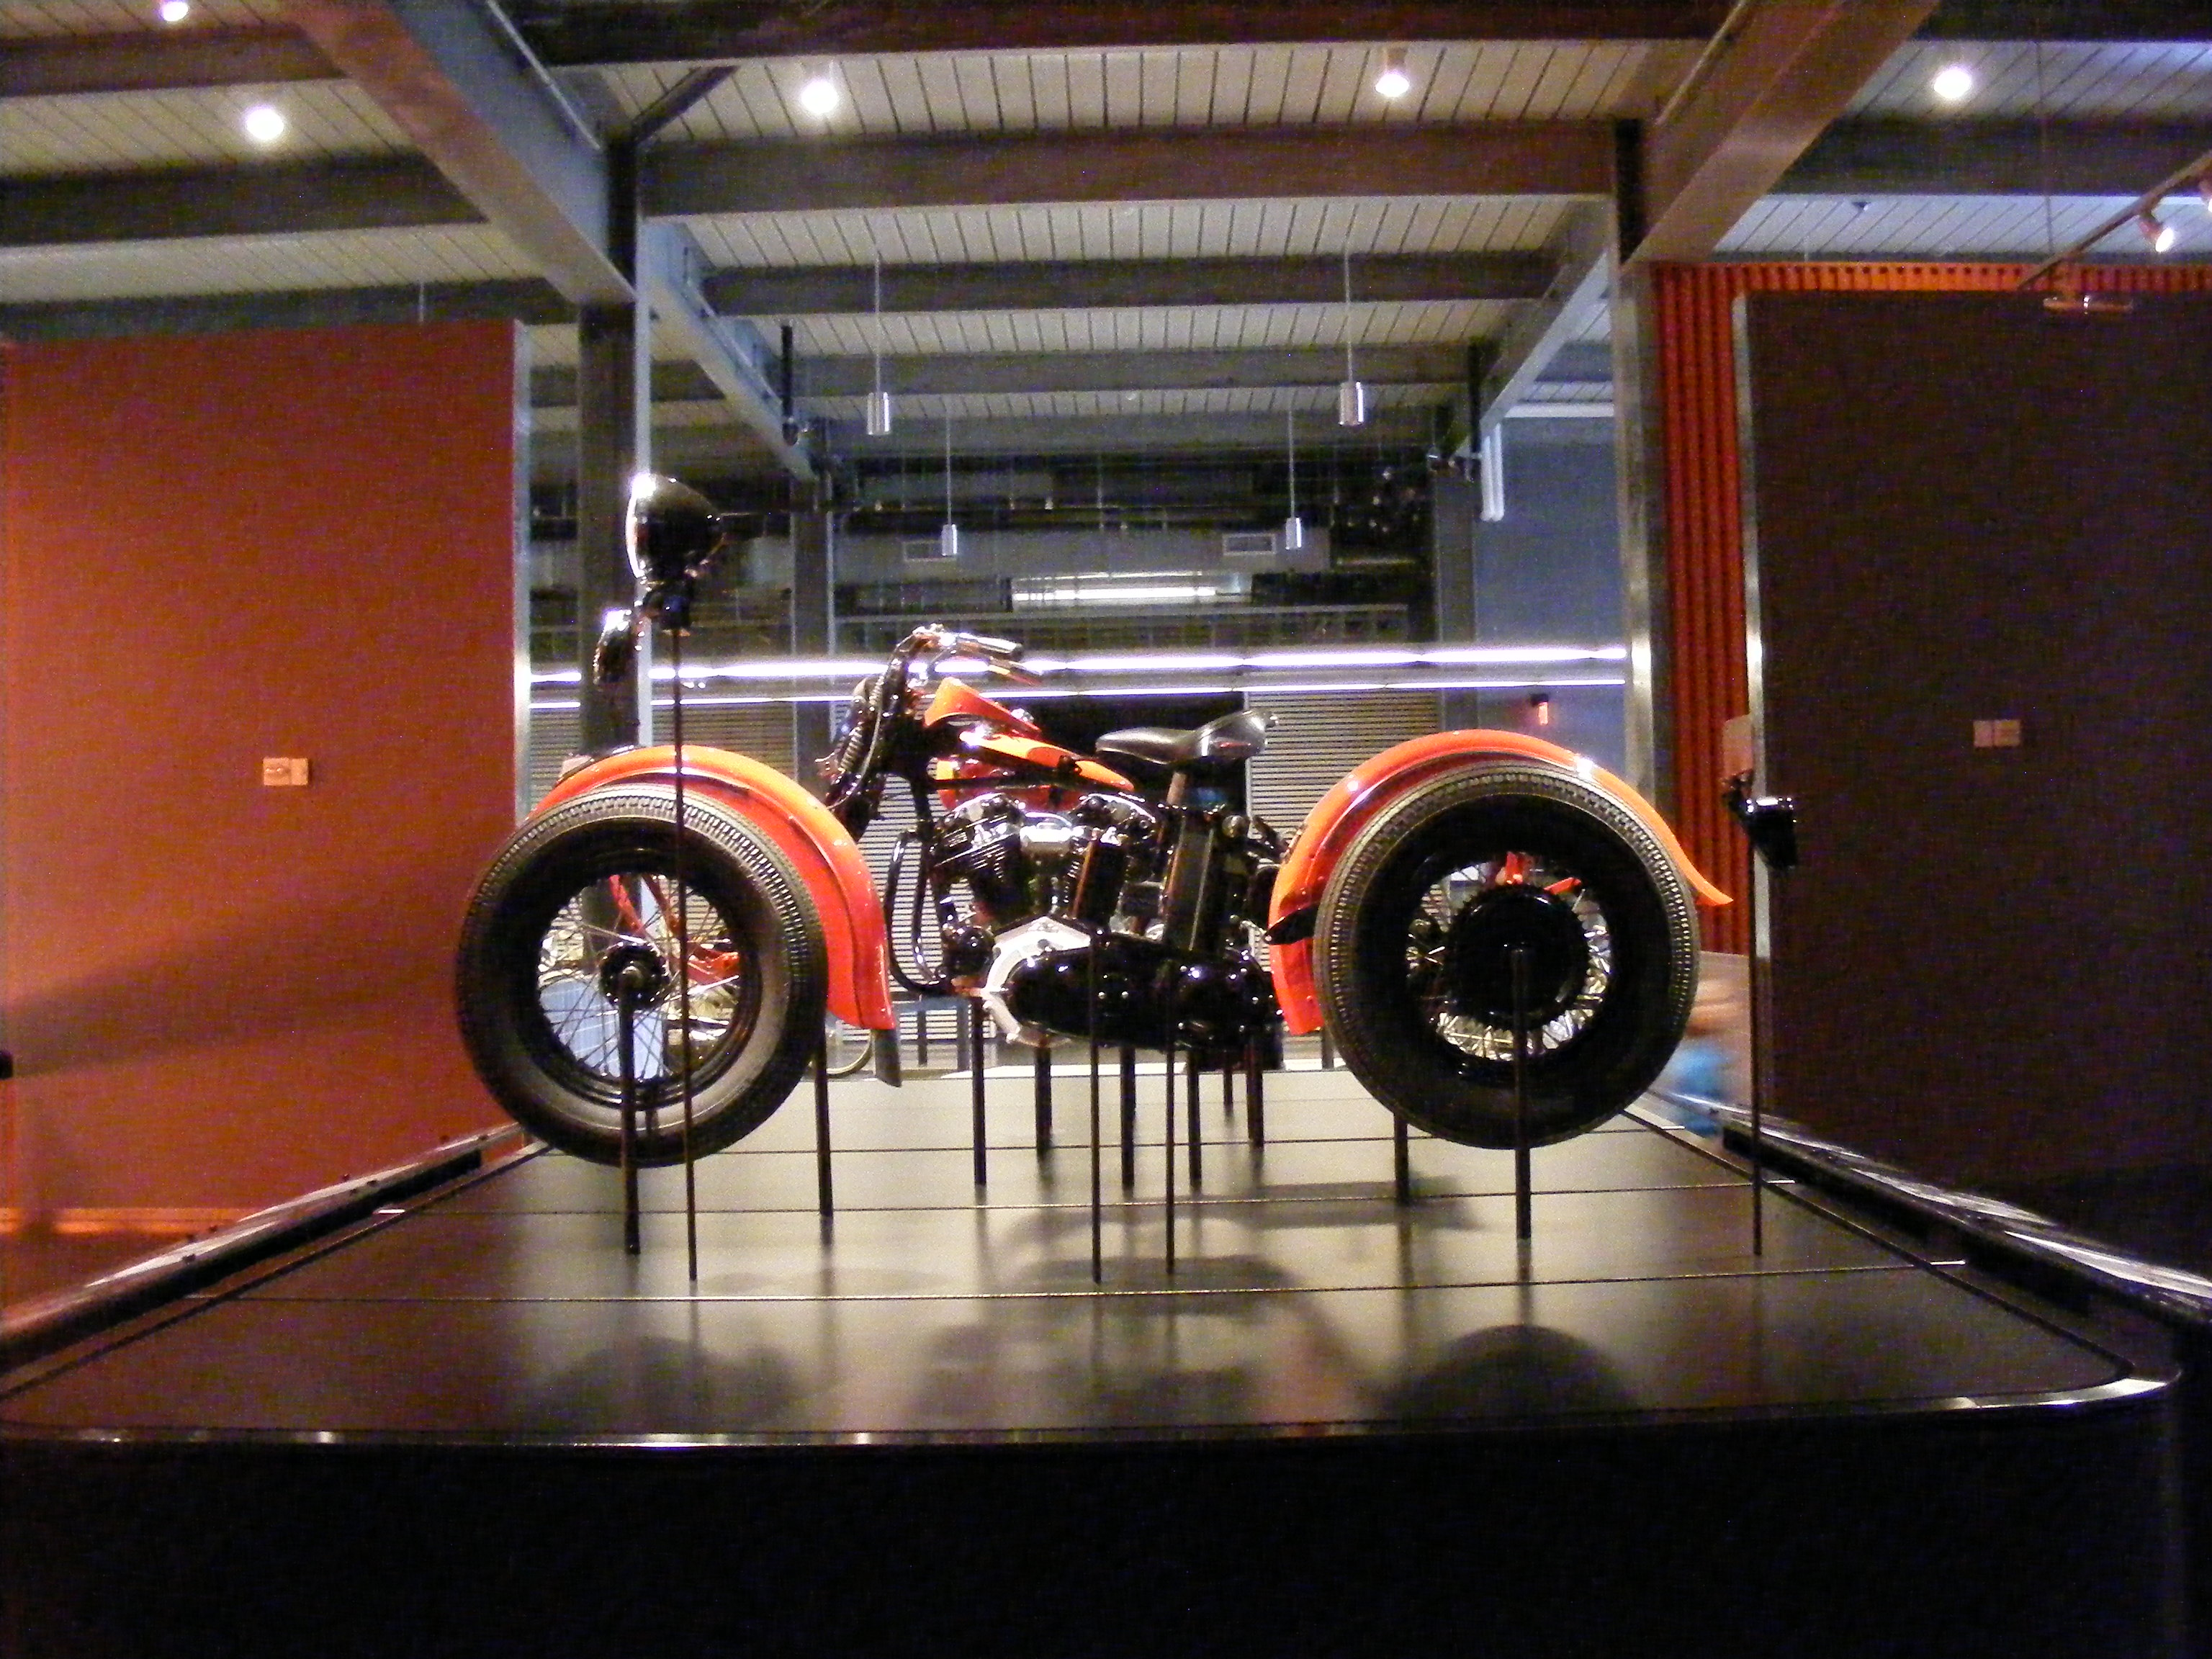 Click image for larger version  Name:Harley Musium 011.jpg Views:78 Size:1.29 MB ID:66688